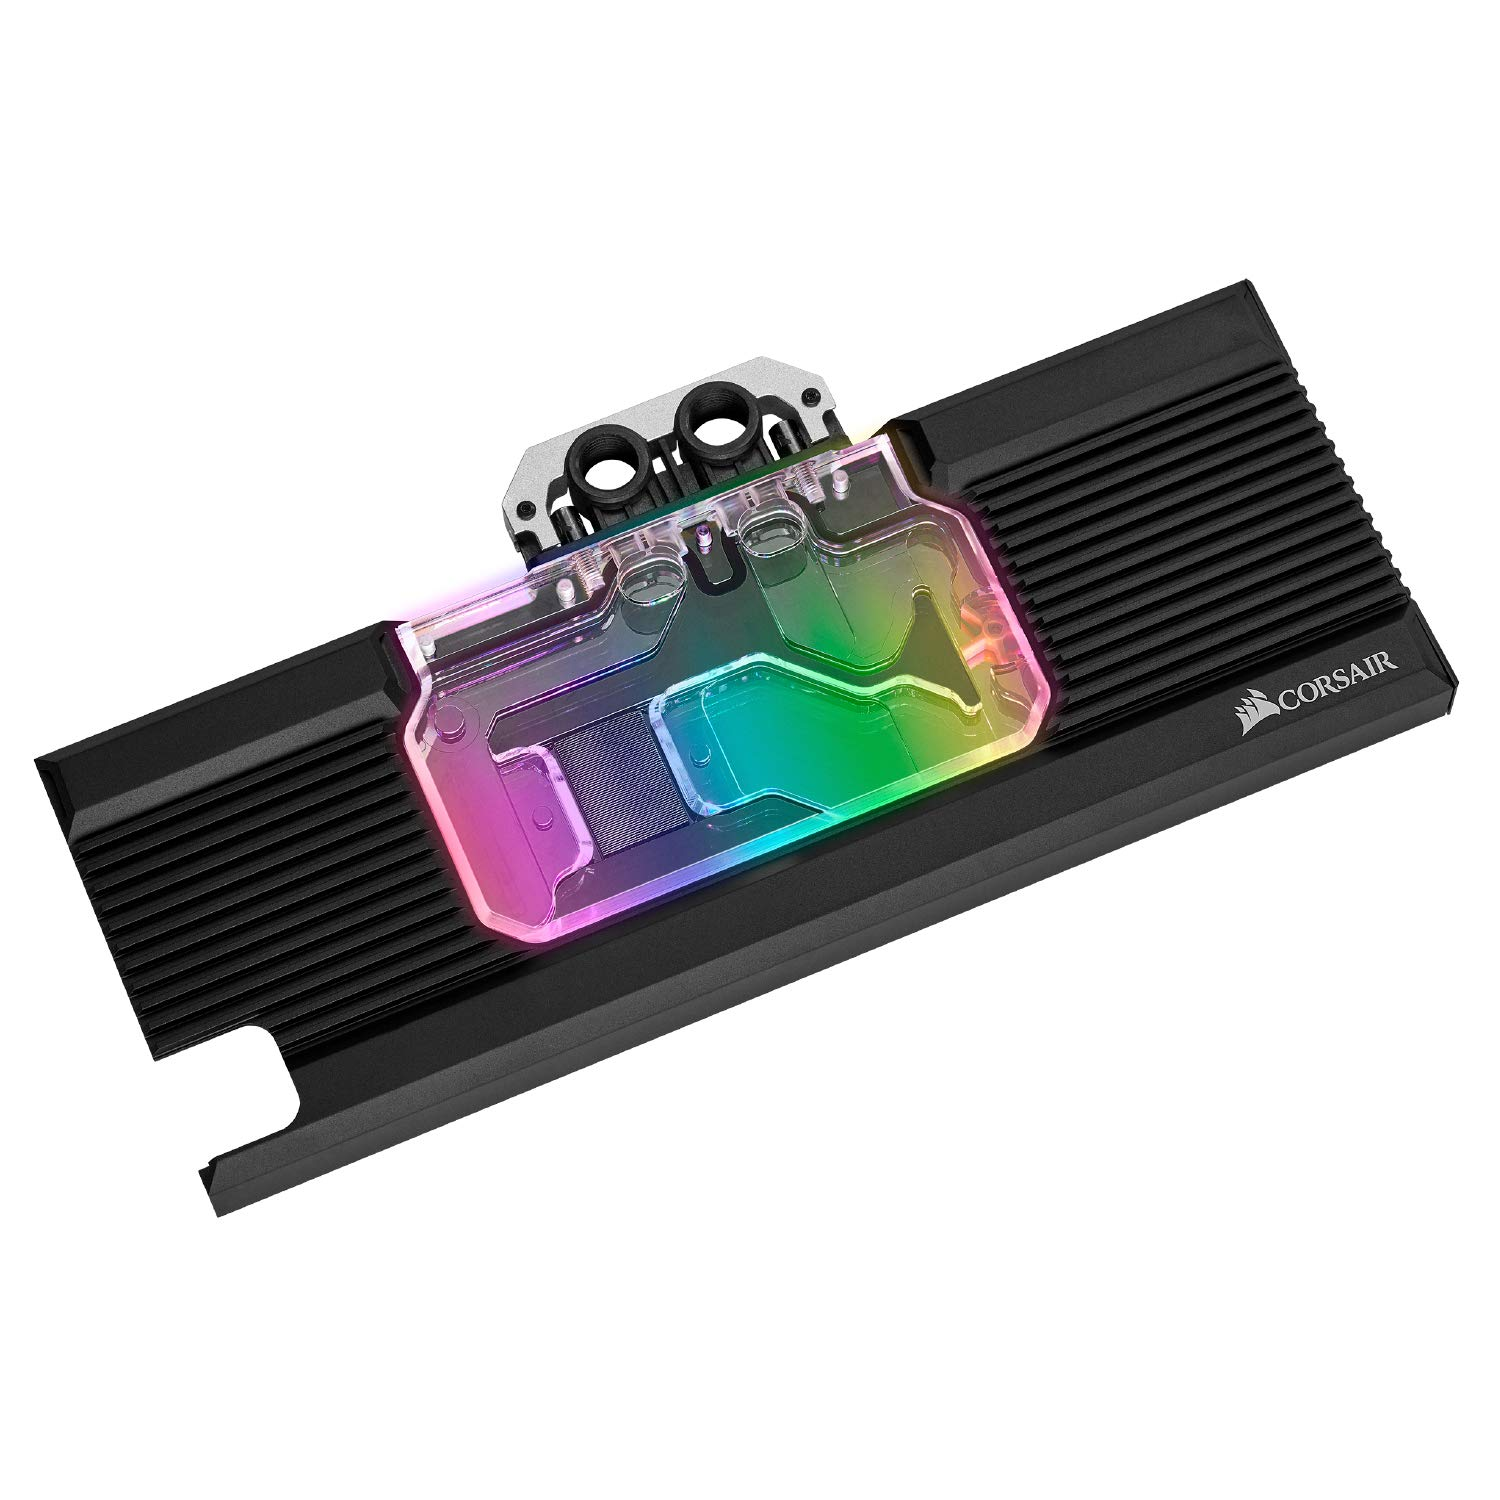 Corsair Hydro X Series, XG7 RGB GPU Water Block, 20-Series, GeForce RTX 2080 Reference